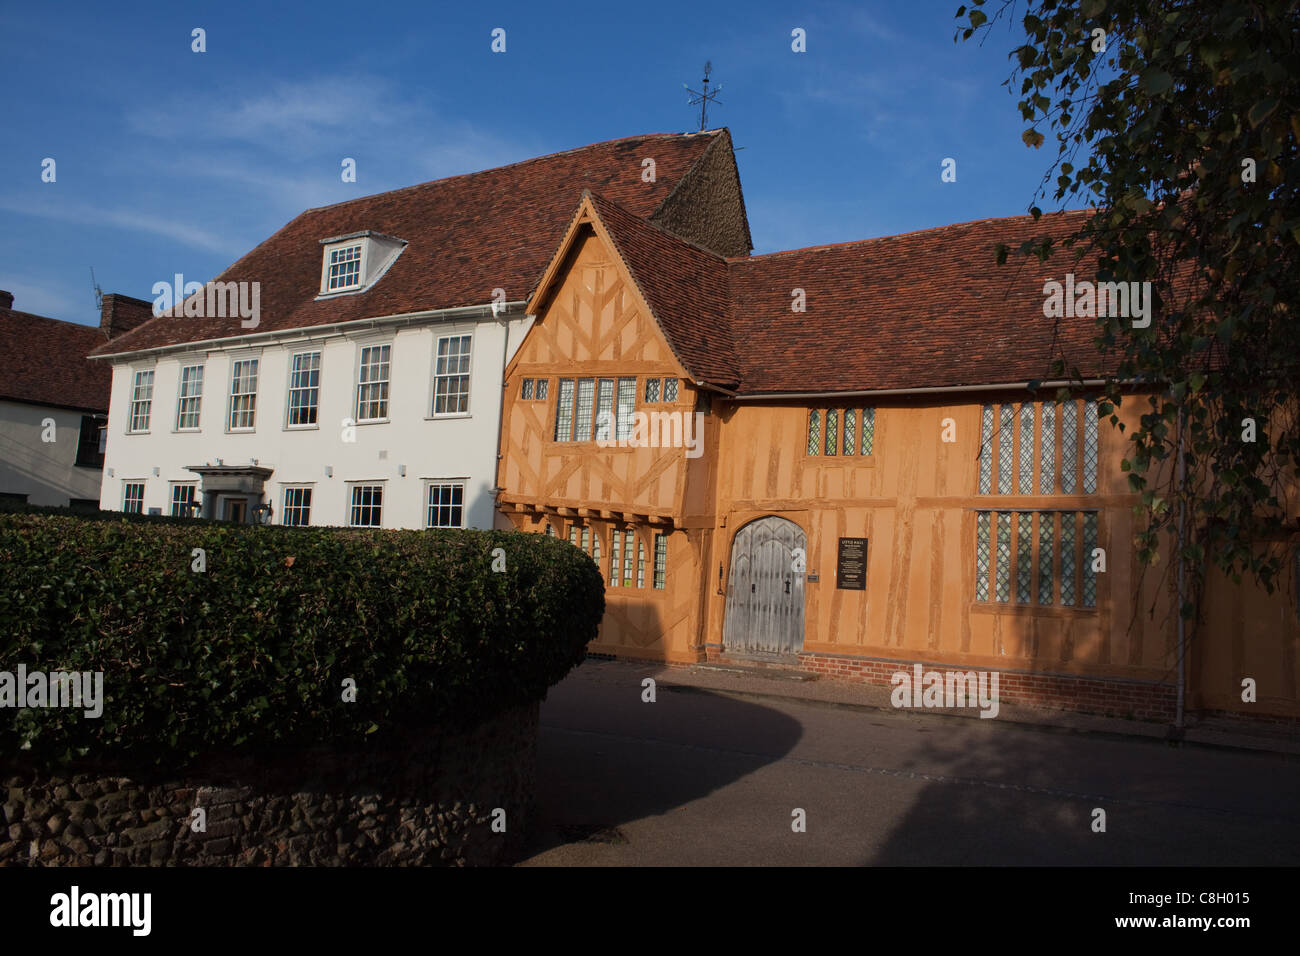 The Little Hall Museum at Lavenham, Suffolk - Stock Image